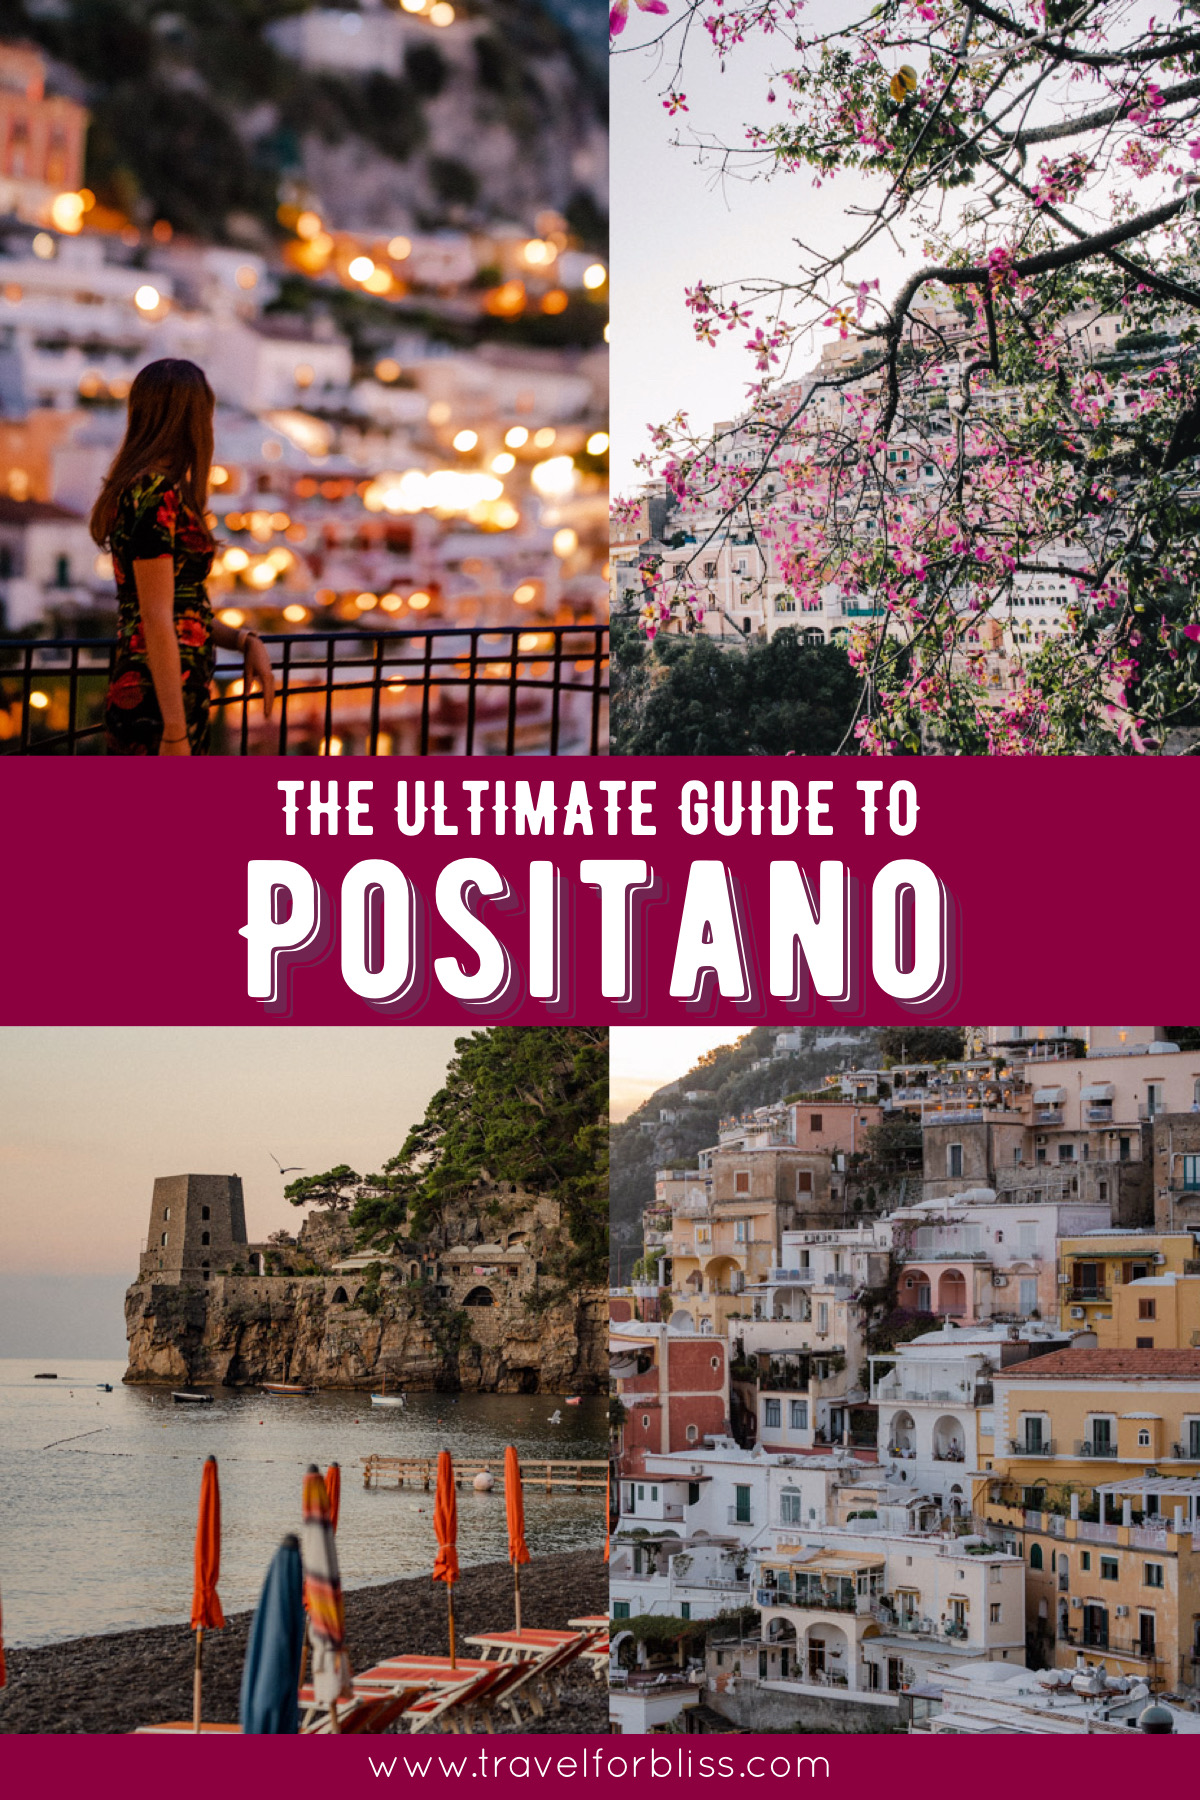 The ultimate guide to Positano has everything you need for the best holiday in Positano. This guide covers where to eat, where to stay, and how to get to Positano.